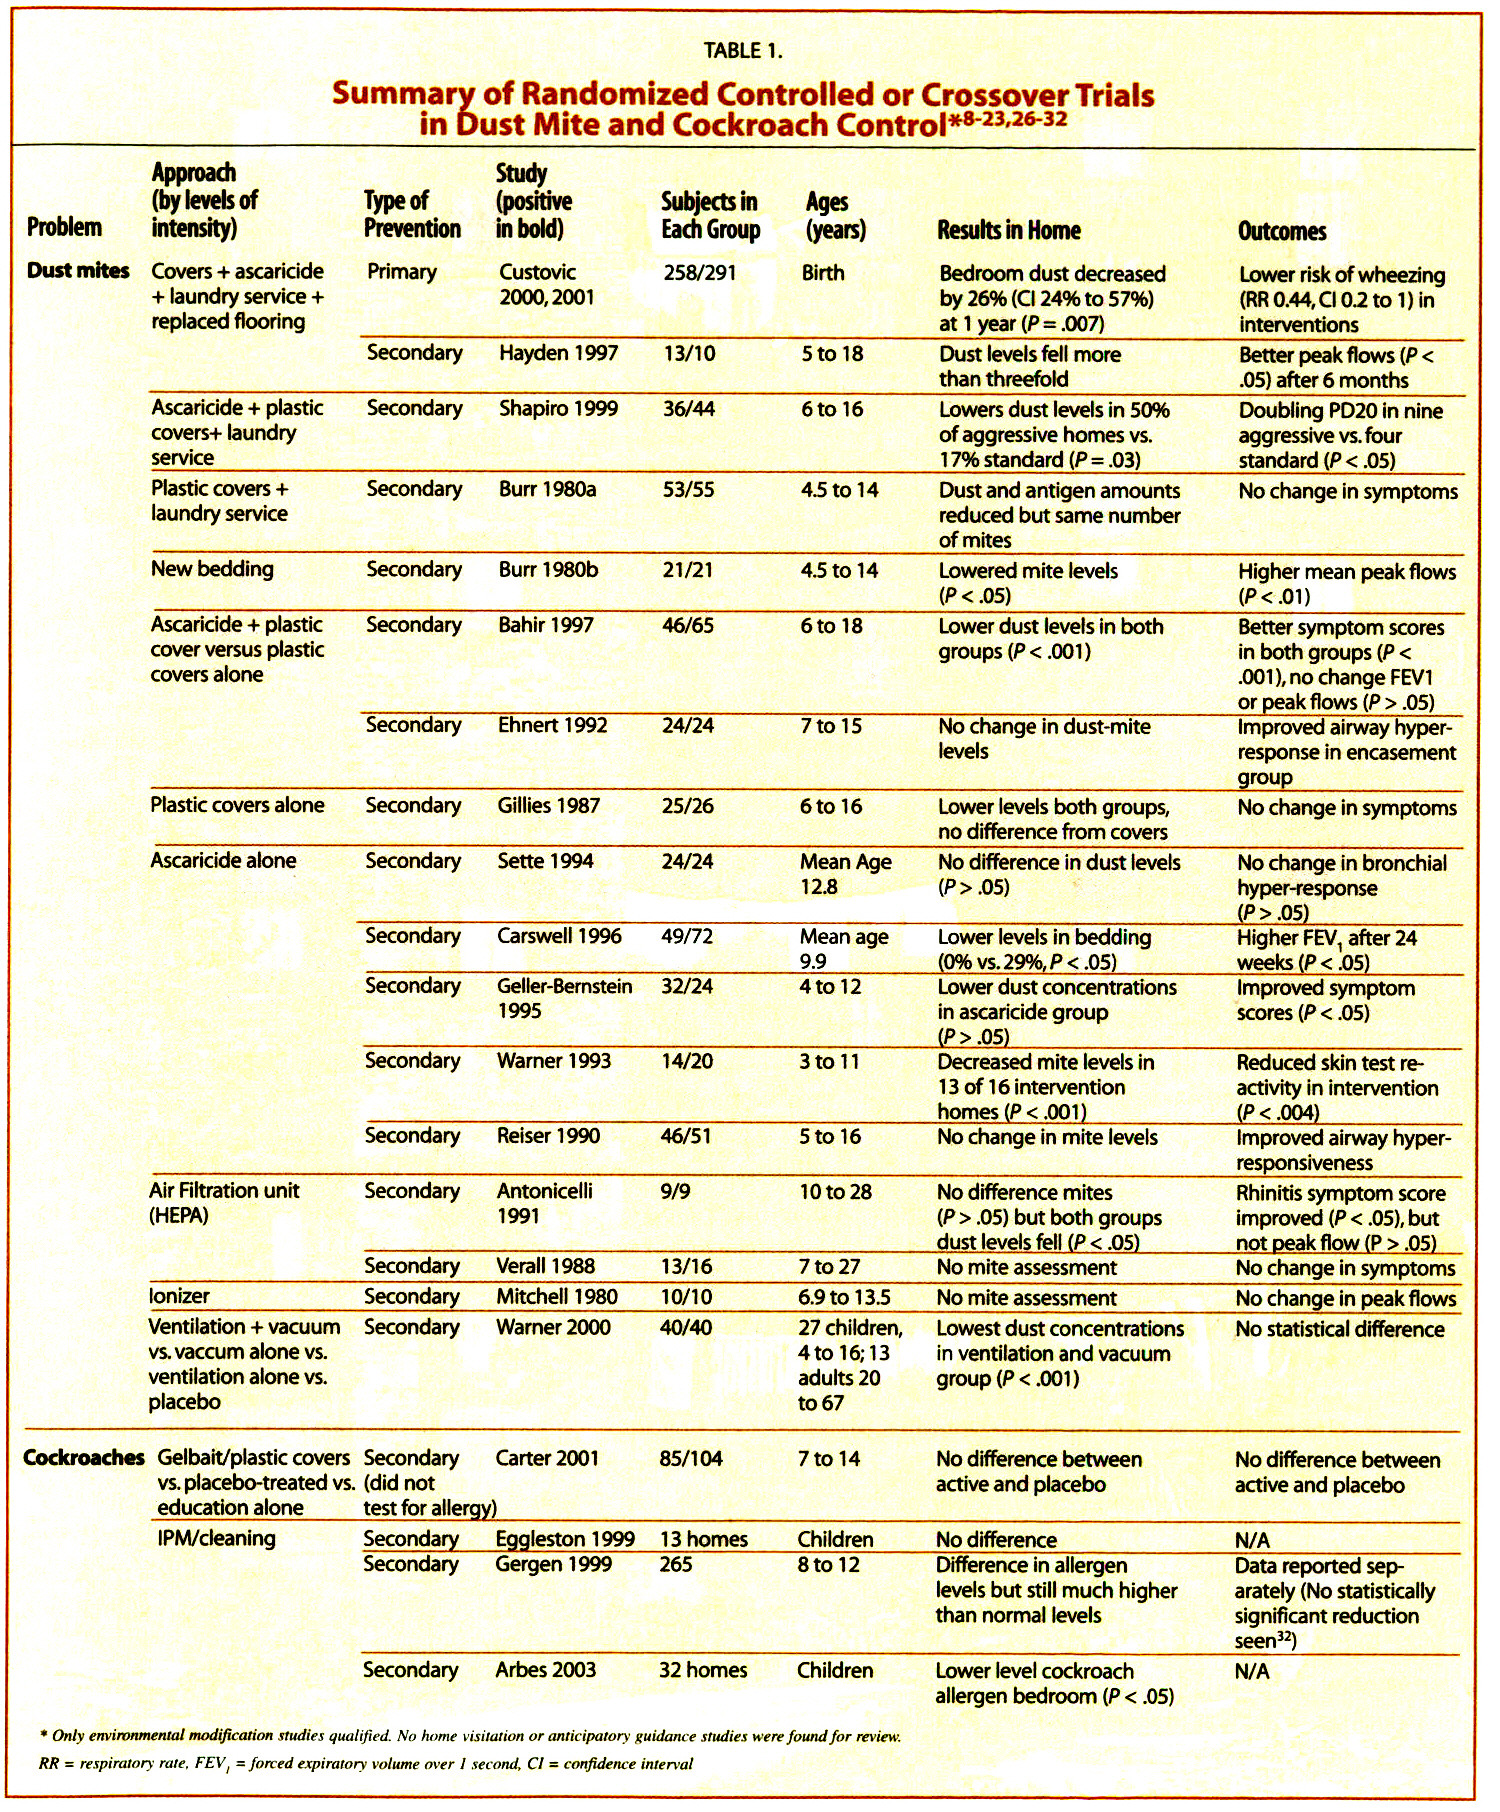 TABLE 1.Summary of Randomized Controlled or Crossover Trials in Dust Mite and Cockroach Control*8-23,26-32